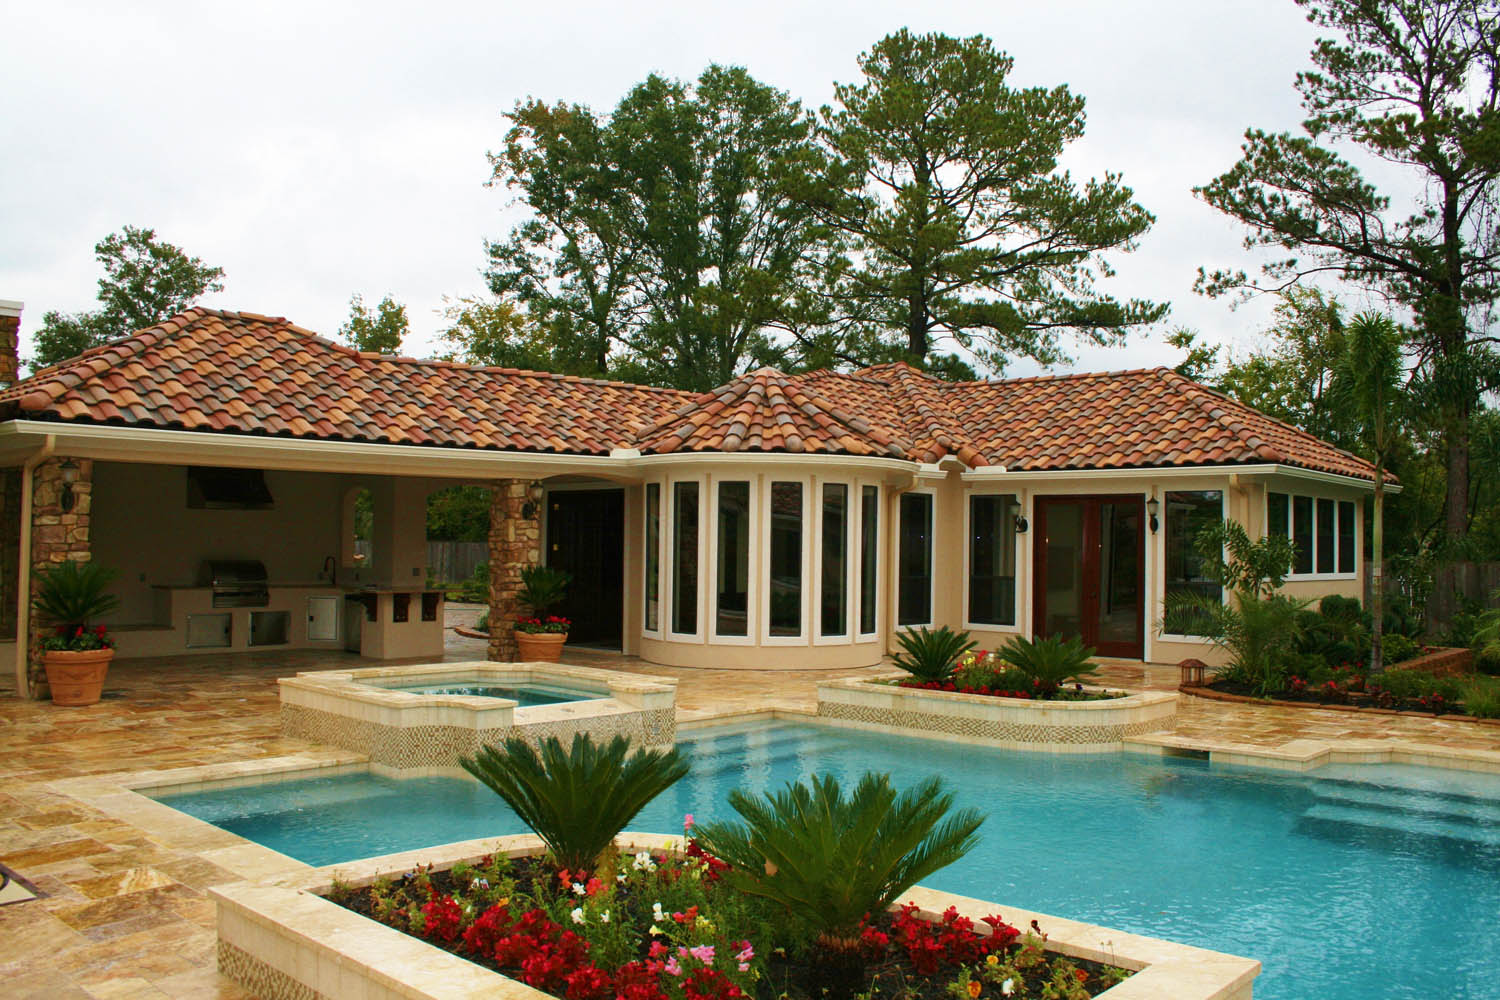 Mediterranean Style Pool And Spa Surrounded By Small